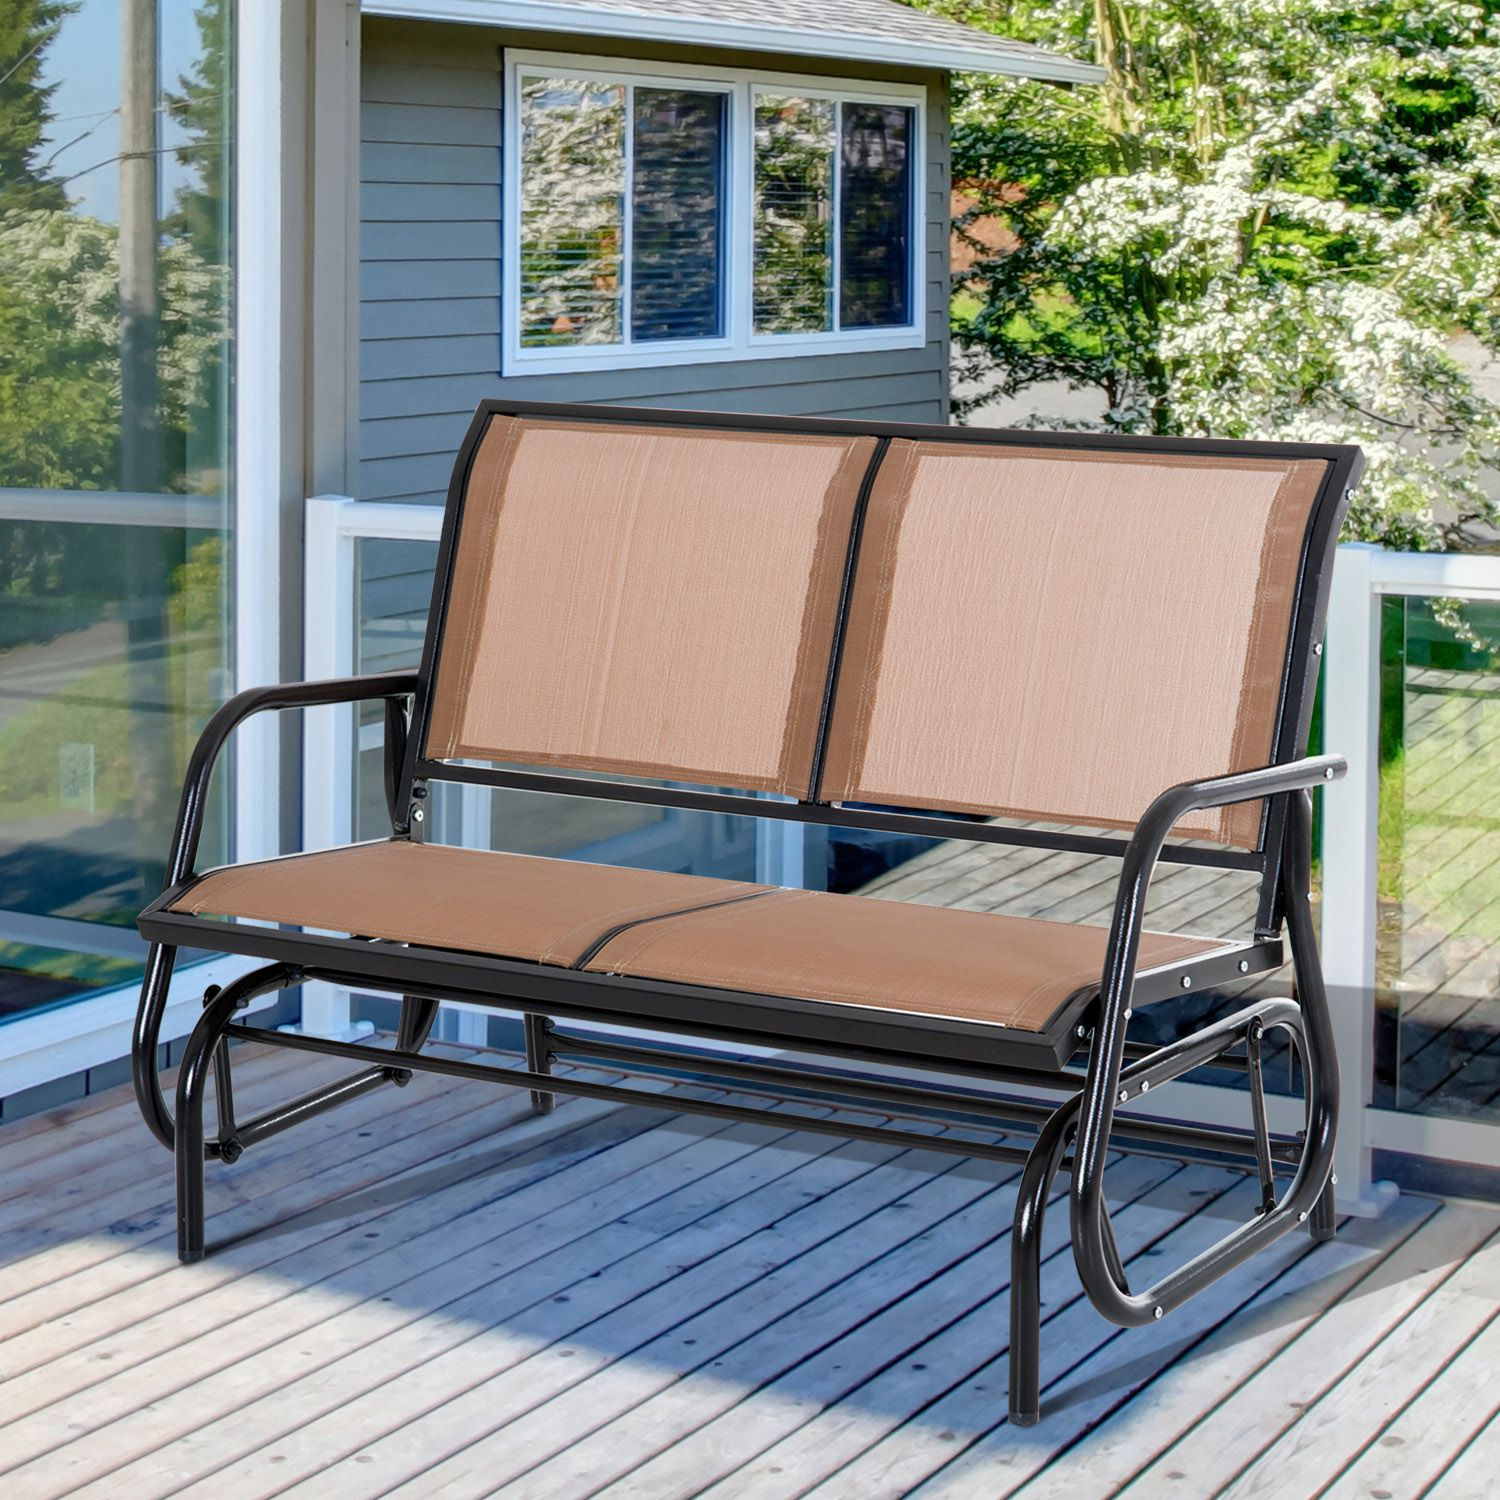 Outsunny Steel Sling Fabric Patio Outdoor Glider Double Swing Chair – Brown Within Sling Double Glider Benches (View 20 of 25)